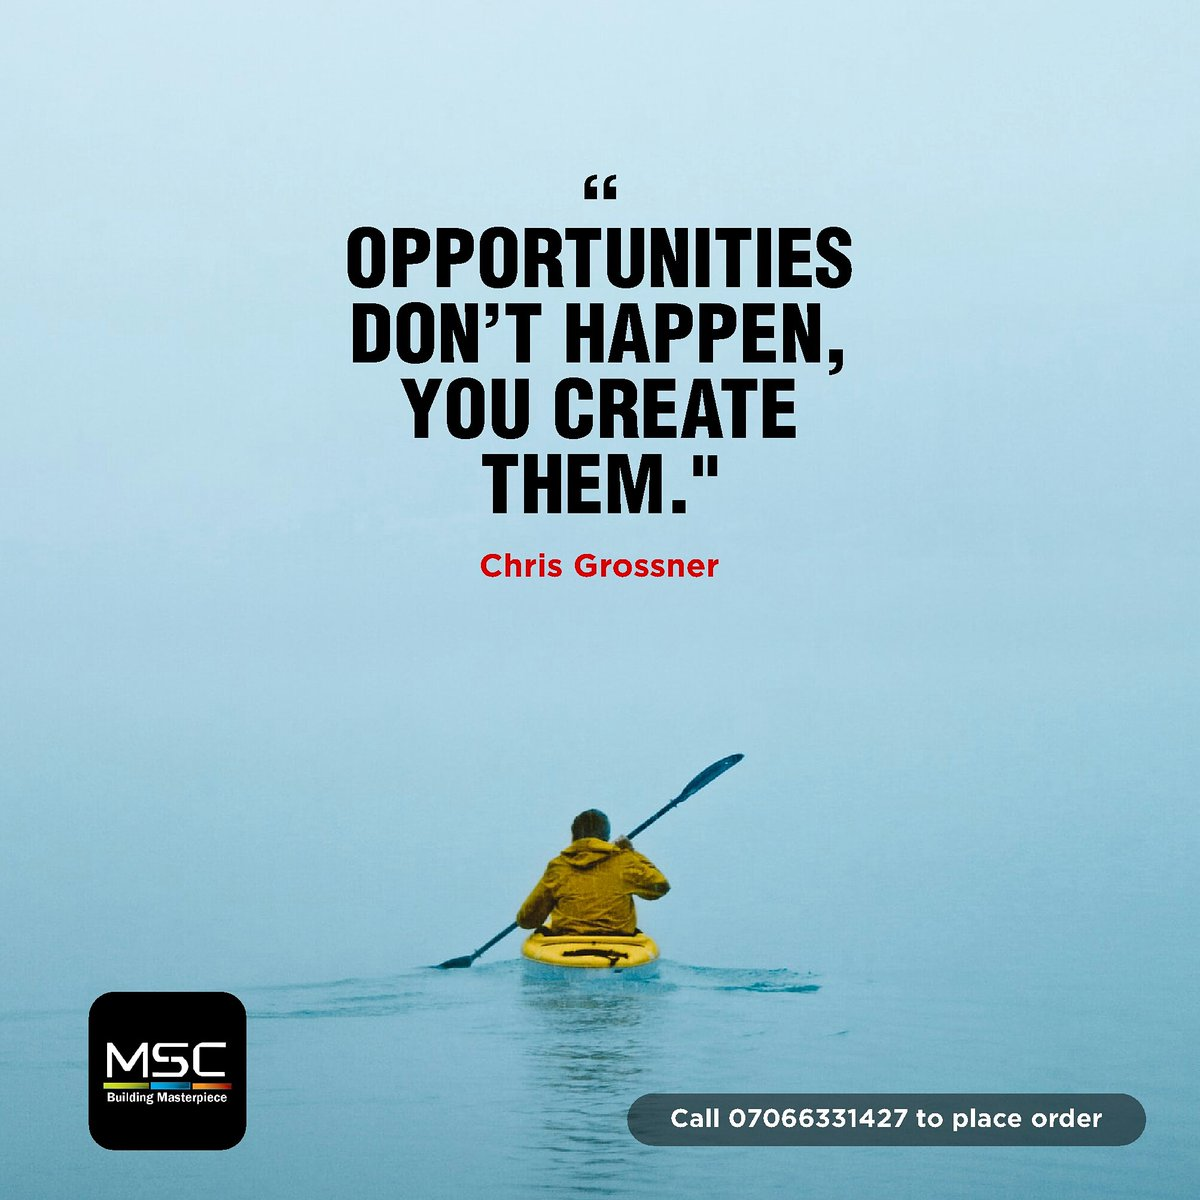 Create your own opportunities!  #mondaypush  #staysafe #createyourstory  #MondayMotivation  #AfricaDay2020pic.twitter.com/YabAhAaLrO